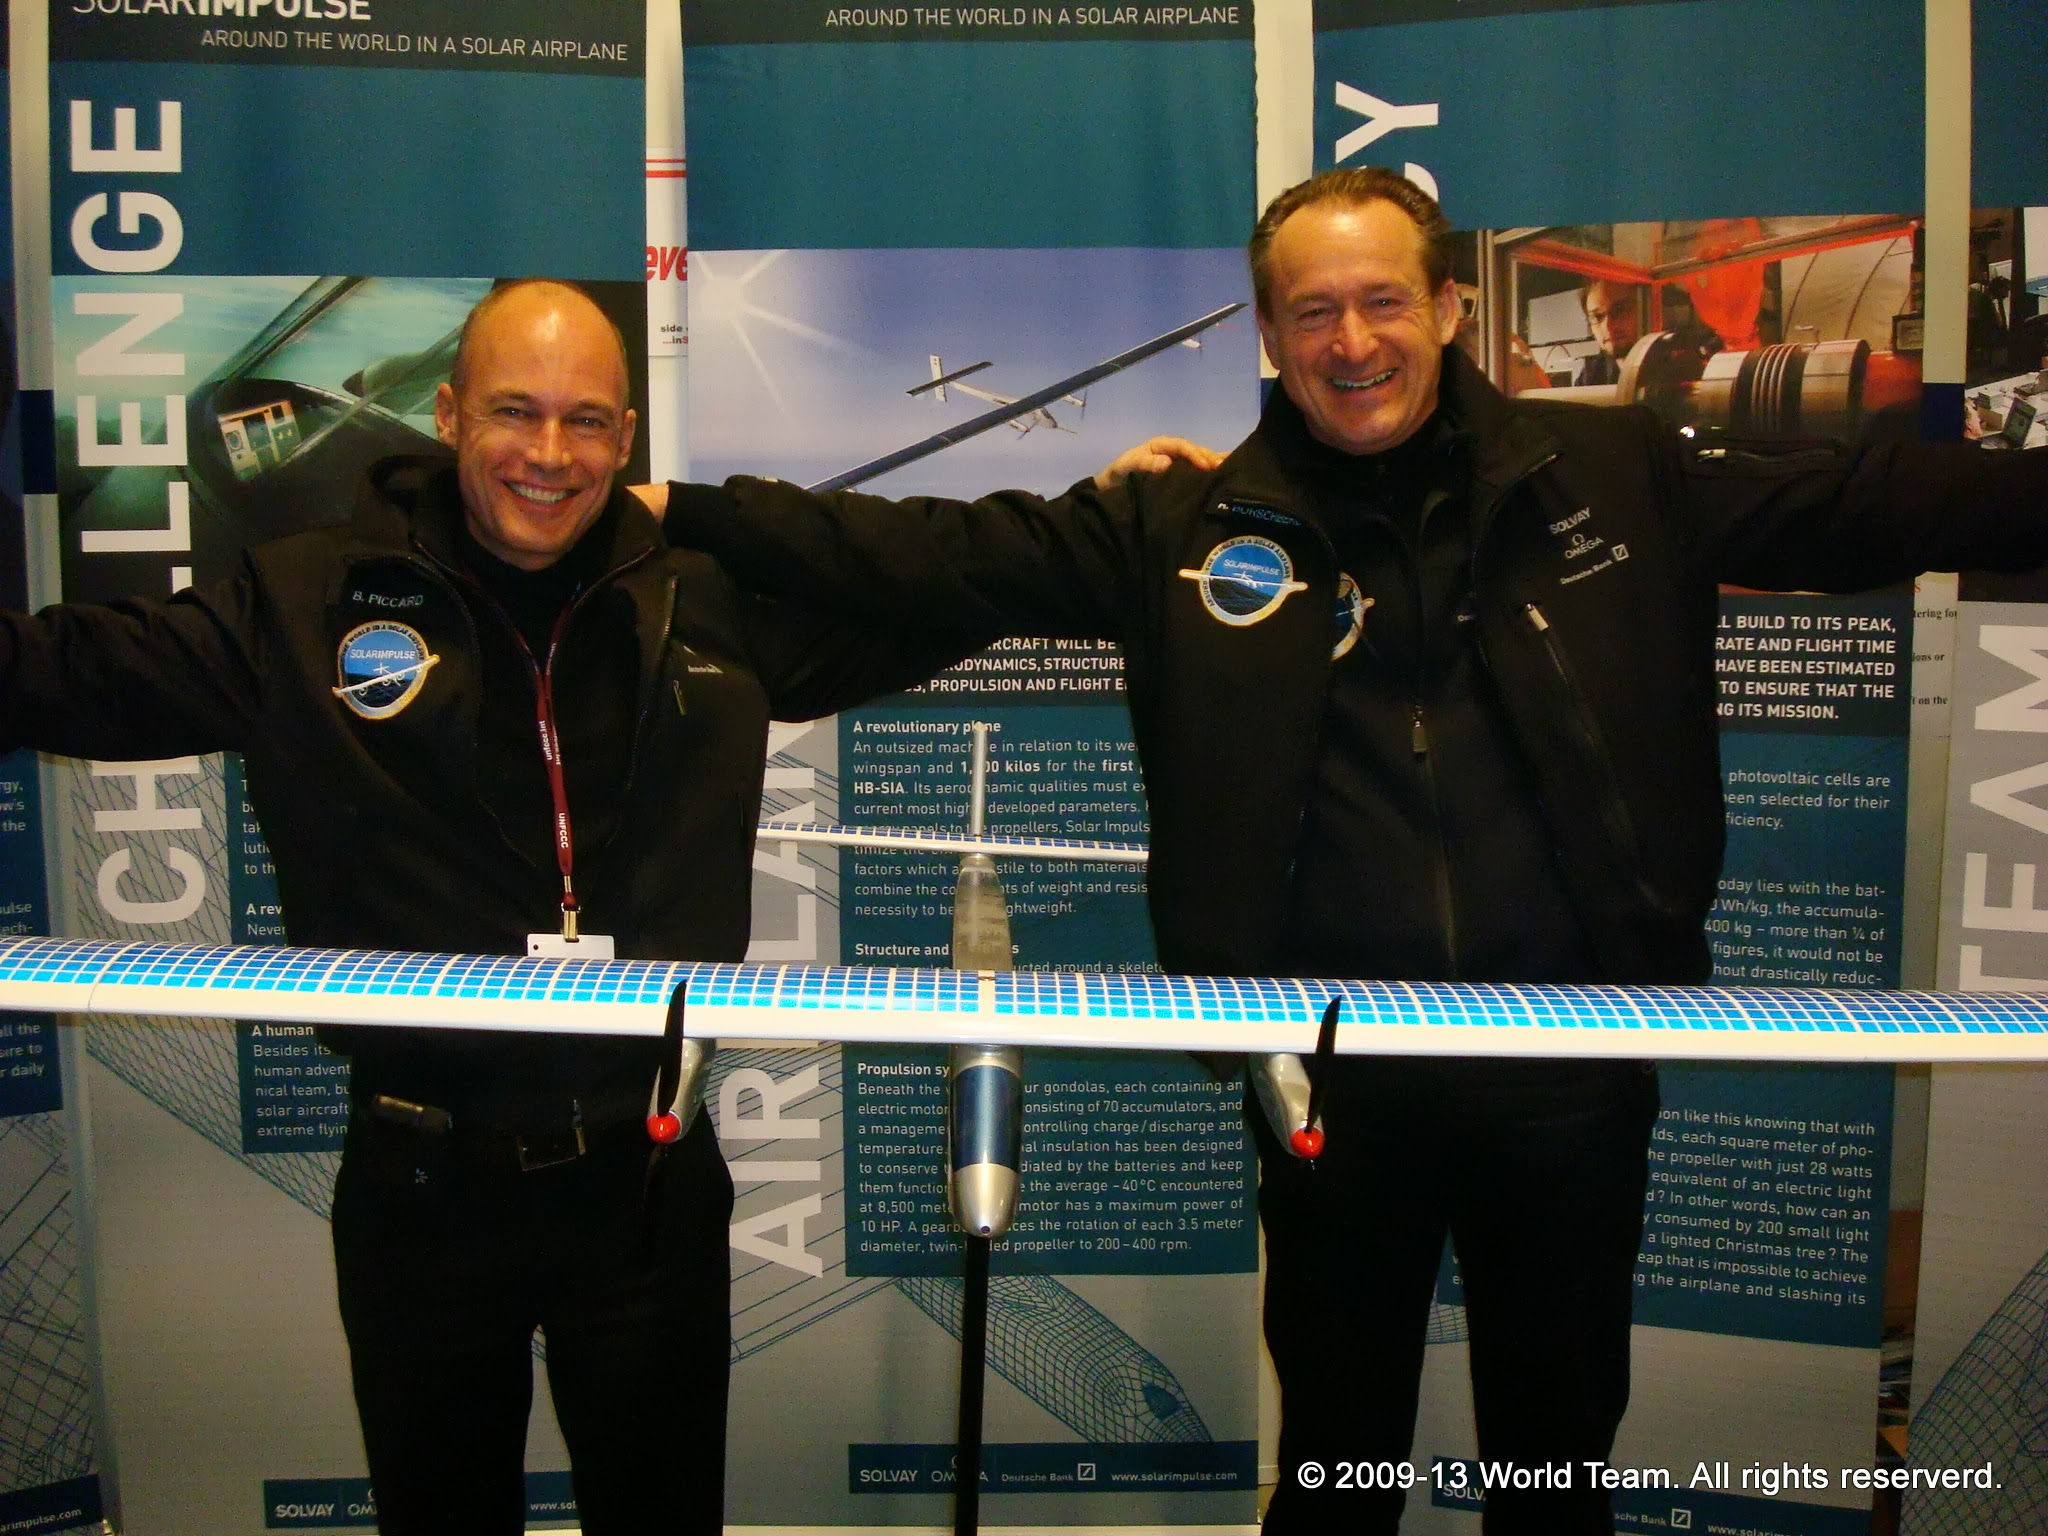 Bertrand Piccard and André' Roschberg of the SolarImpulse at The United Nation's Conference COP15 Copenhagen, Denmark 2009 when the SolarImpulse was a model and a dream.